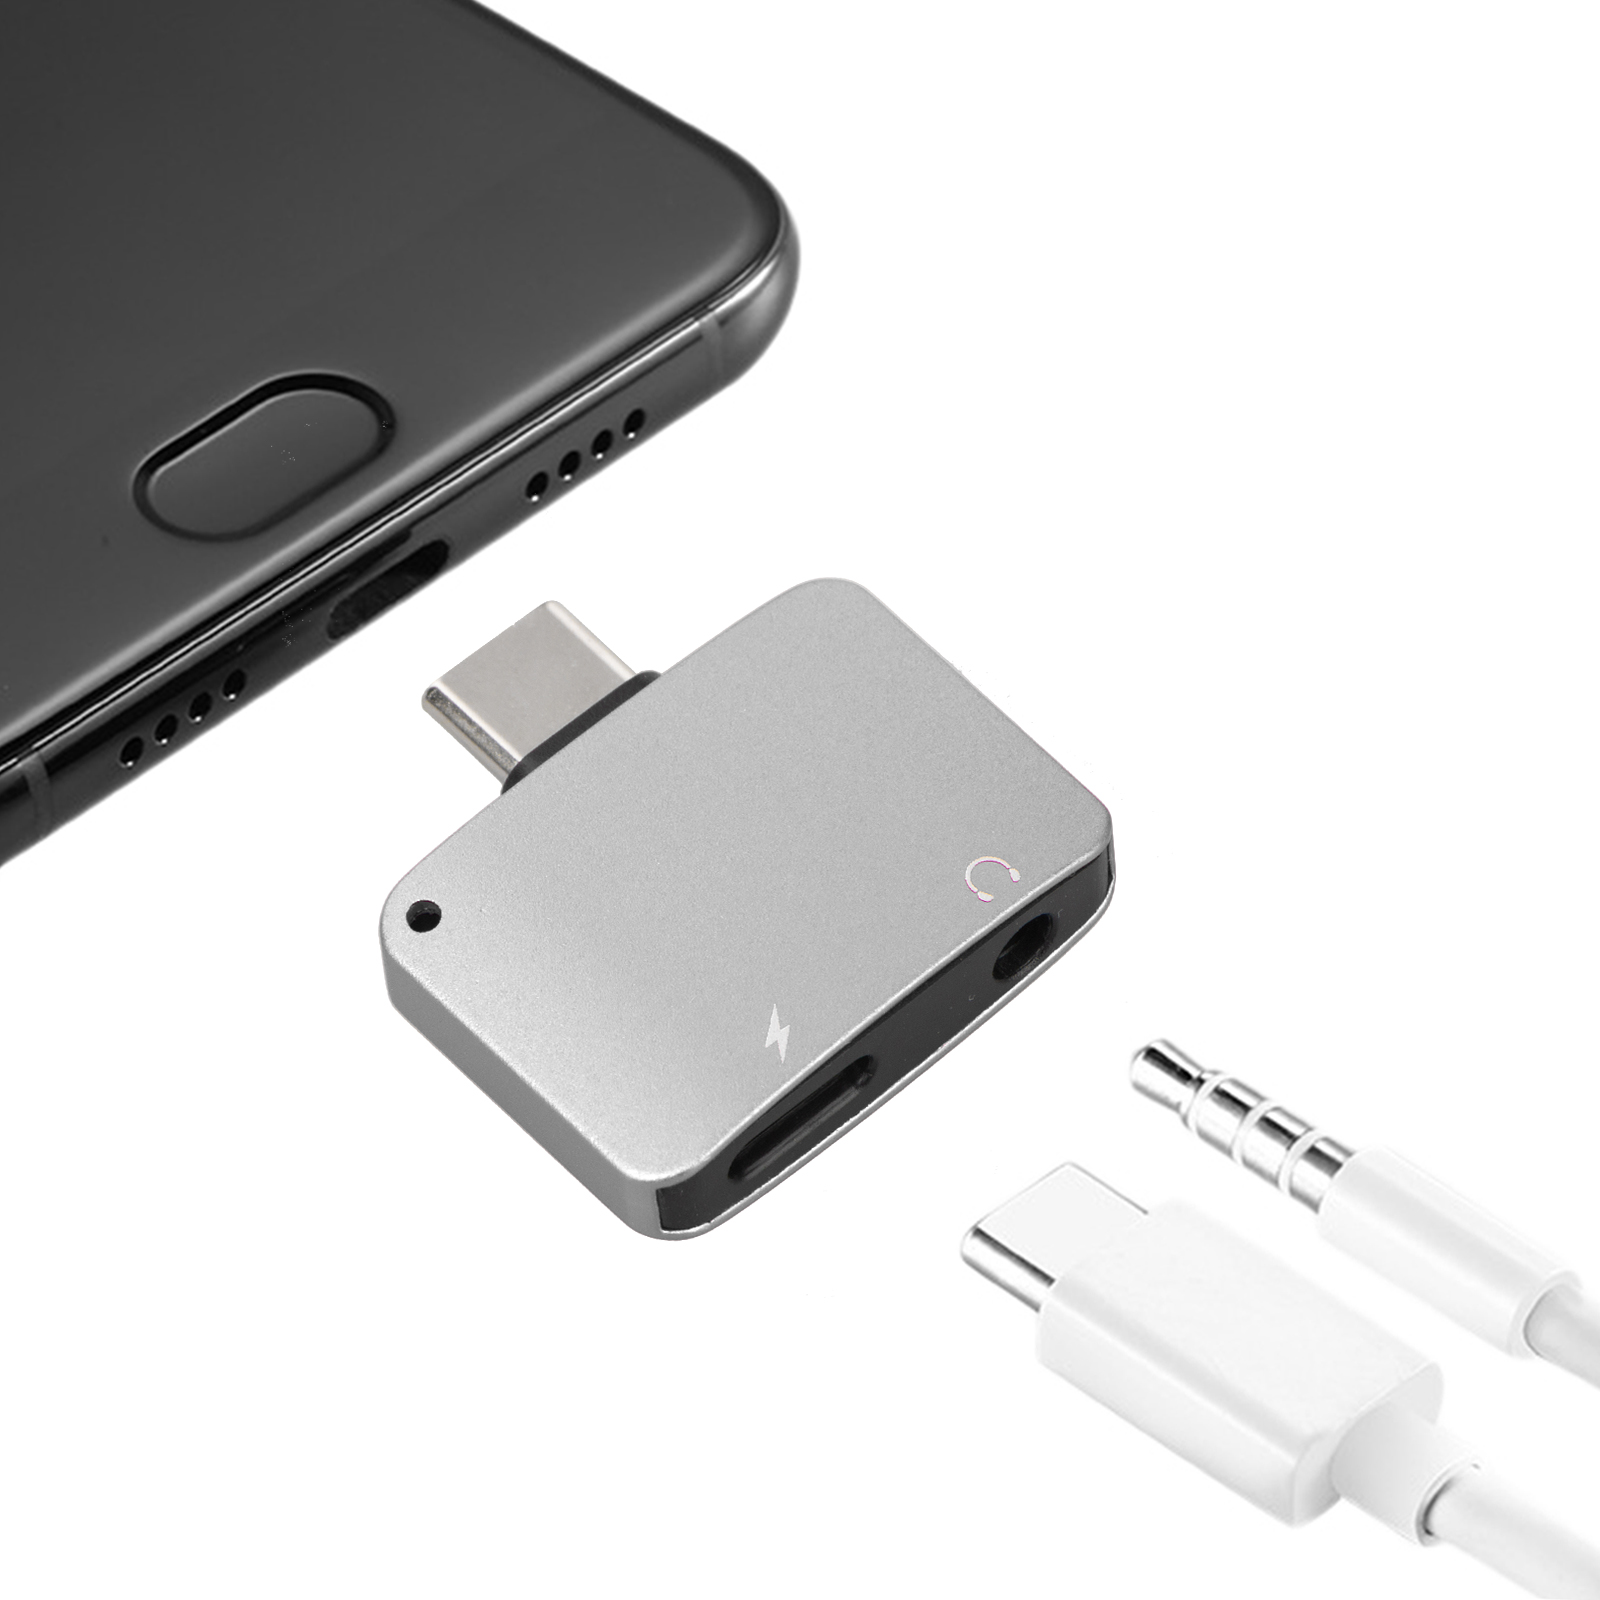 Type C to 3.5 mm and Charger Cable Adapter, 2 in1 Headphone Audio Jack USB C Cable, for LeEco Le Pro 3/Pro 3 Elite/ Max/Max 2, Motorola Moto Z/ Z Droid/ Z Force/ Z Play, One Plus 6/ Plus 6T